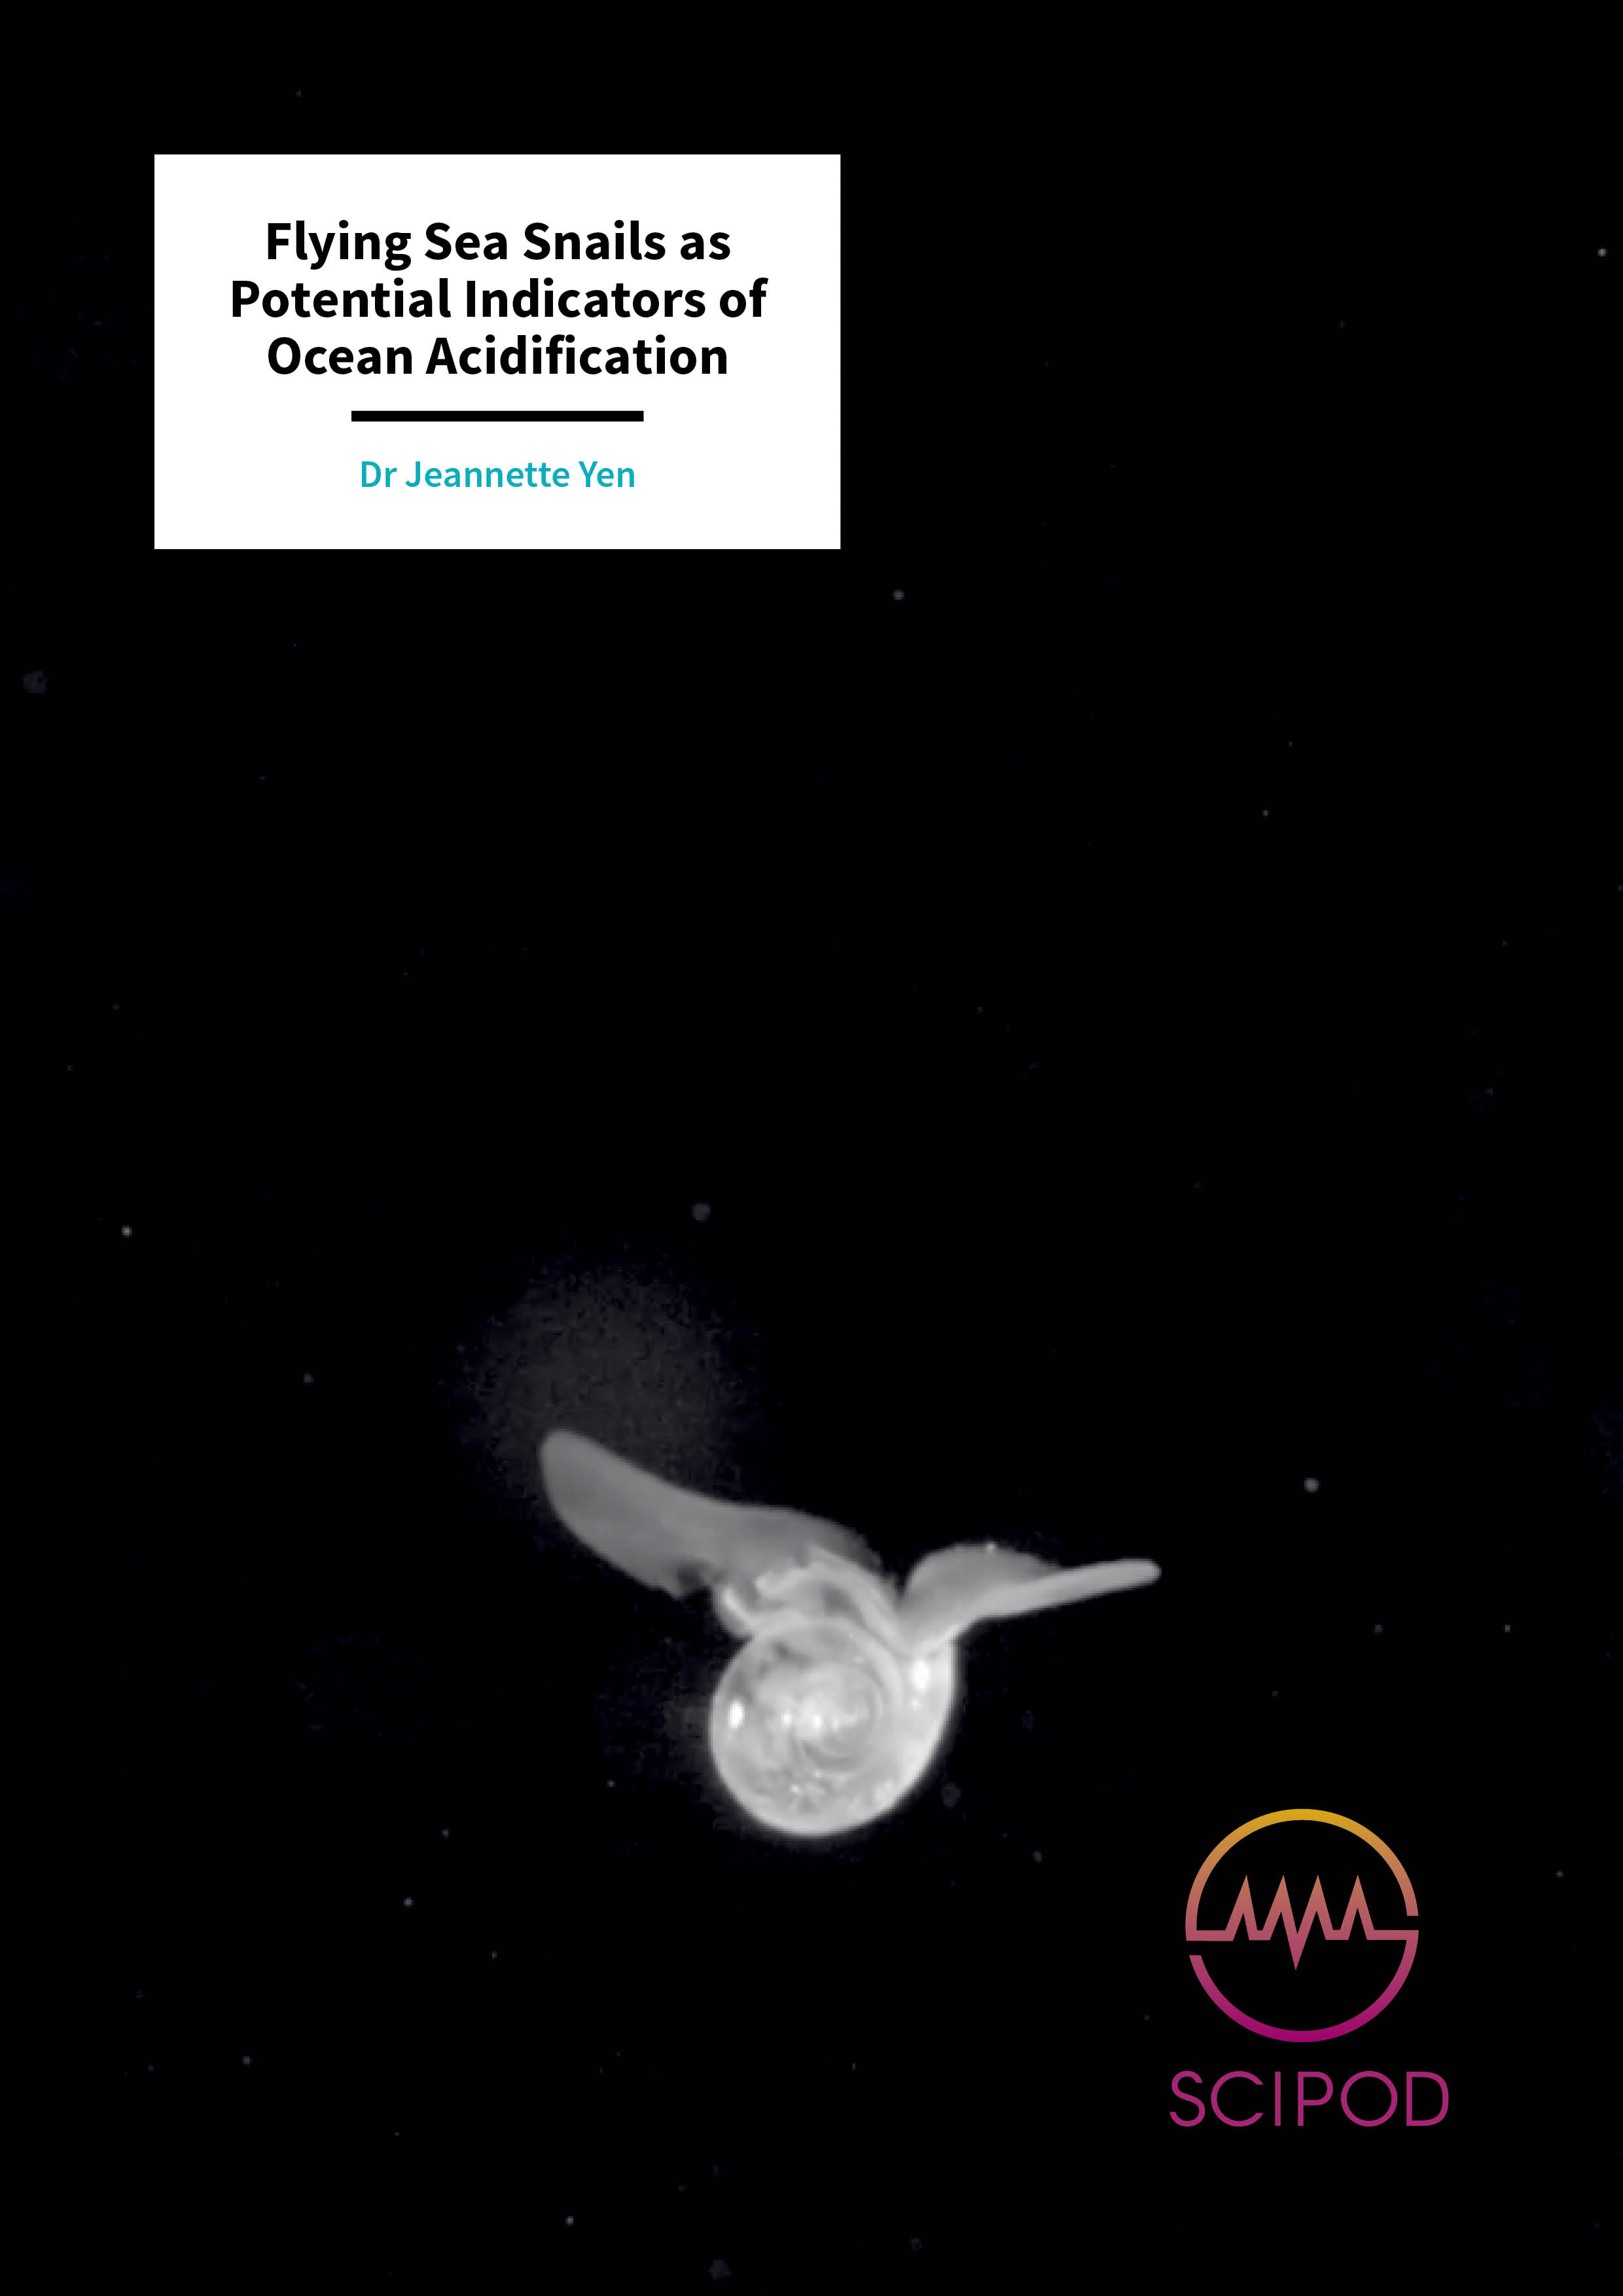 Flying Sea Snails as Potential Indicators of Ocean Acidification – Dr Jeannette Yen, Georgia Institute of Technology